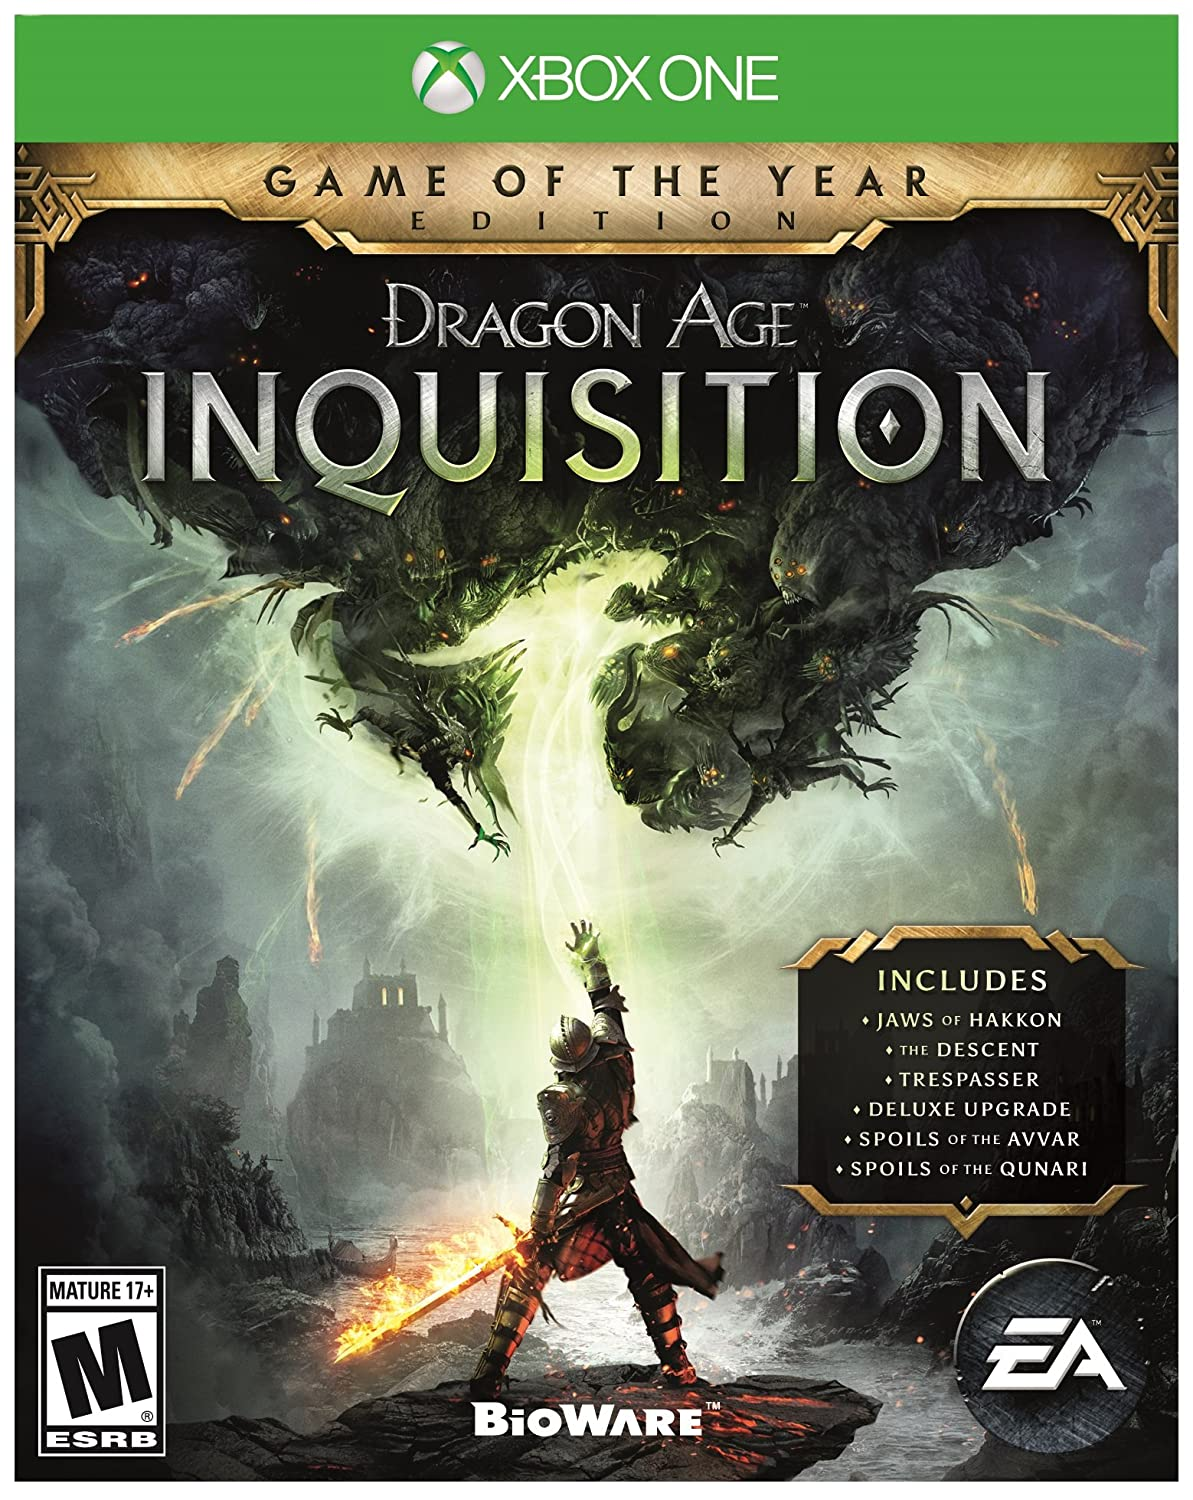 Dragon Age: Inquisition - Game of the Year Edition - Xbox One [NEW]